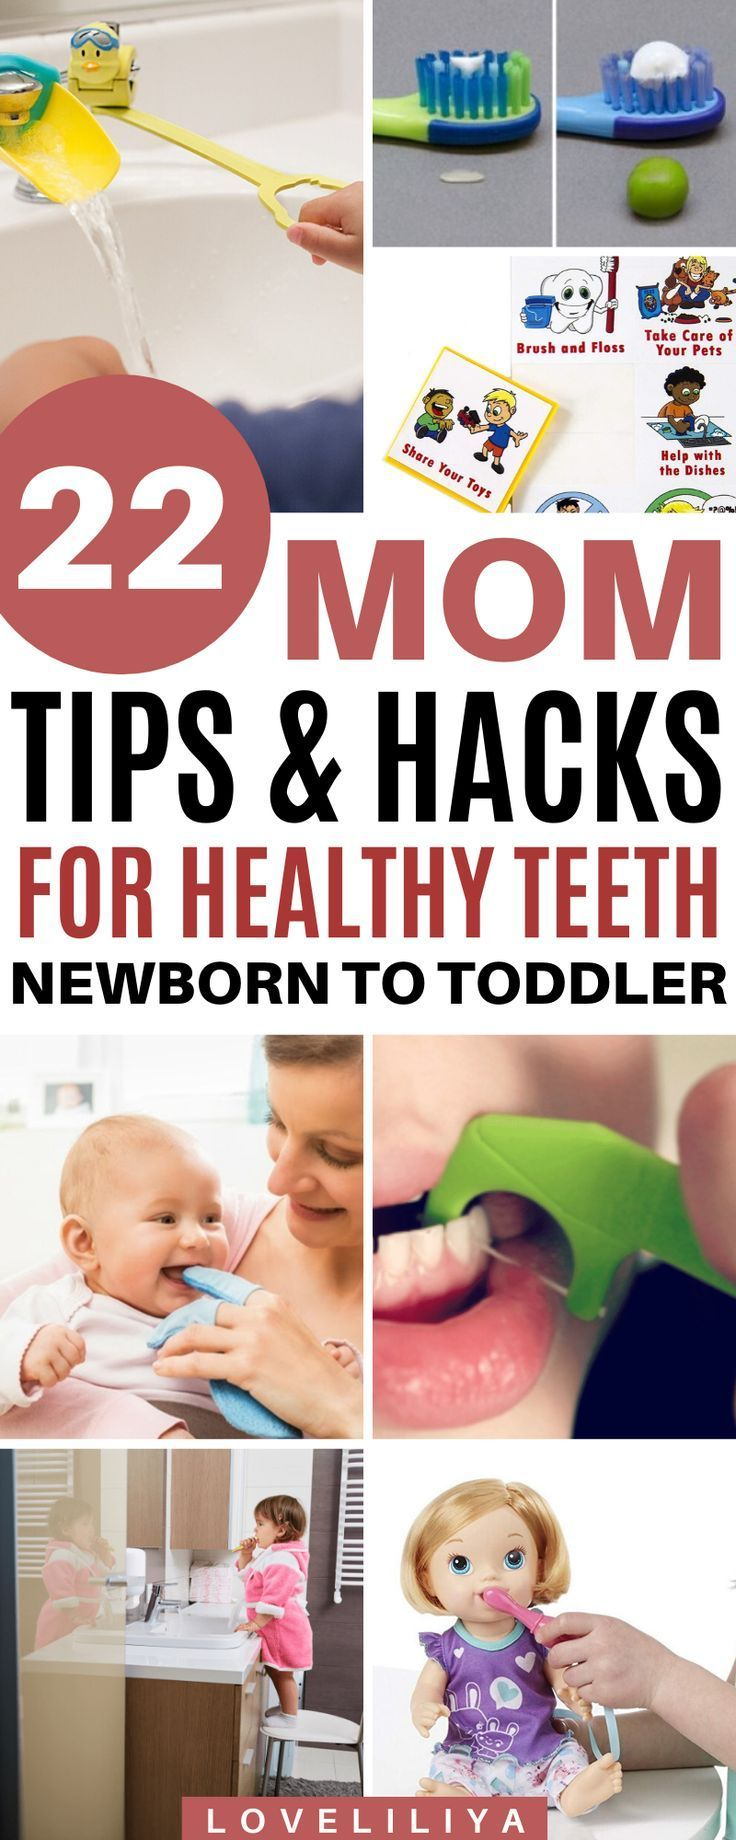 Tips on Toddler Cavity Prevention and Brushing that Every Parent Should Know! - LoveLiliya